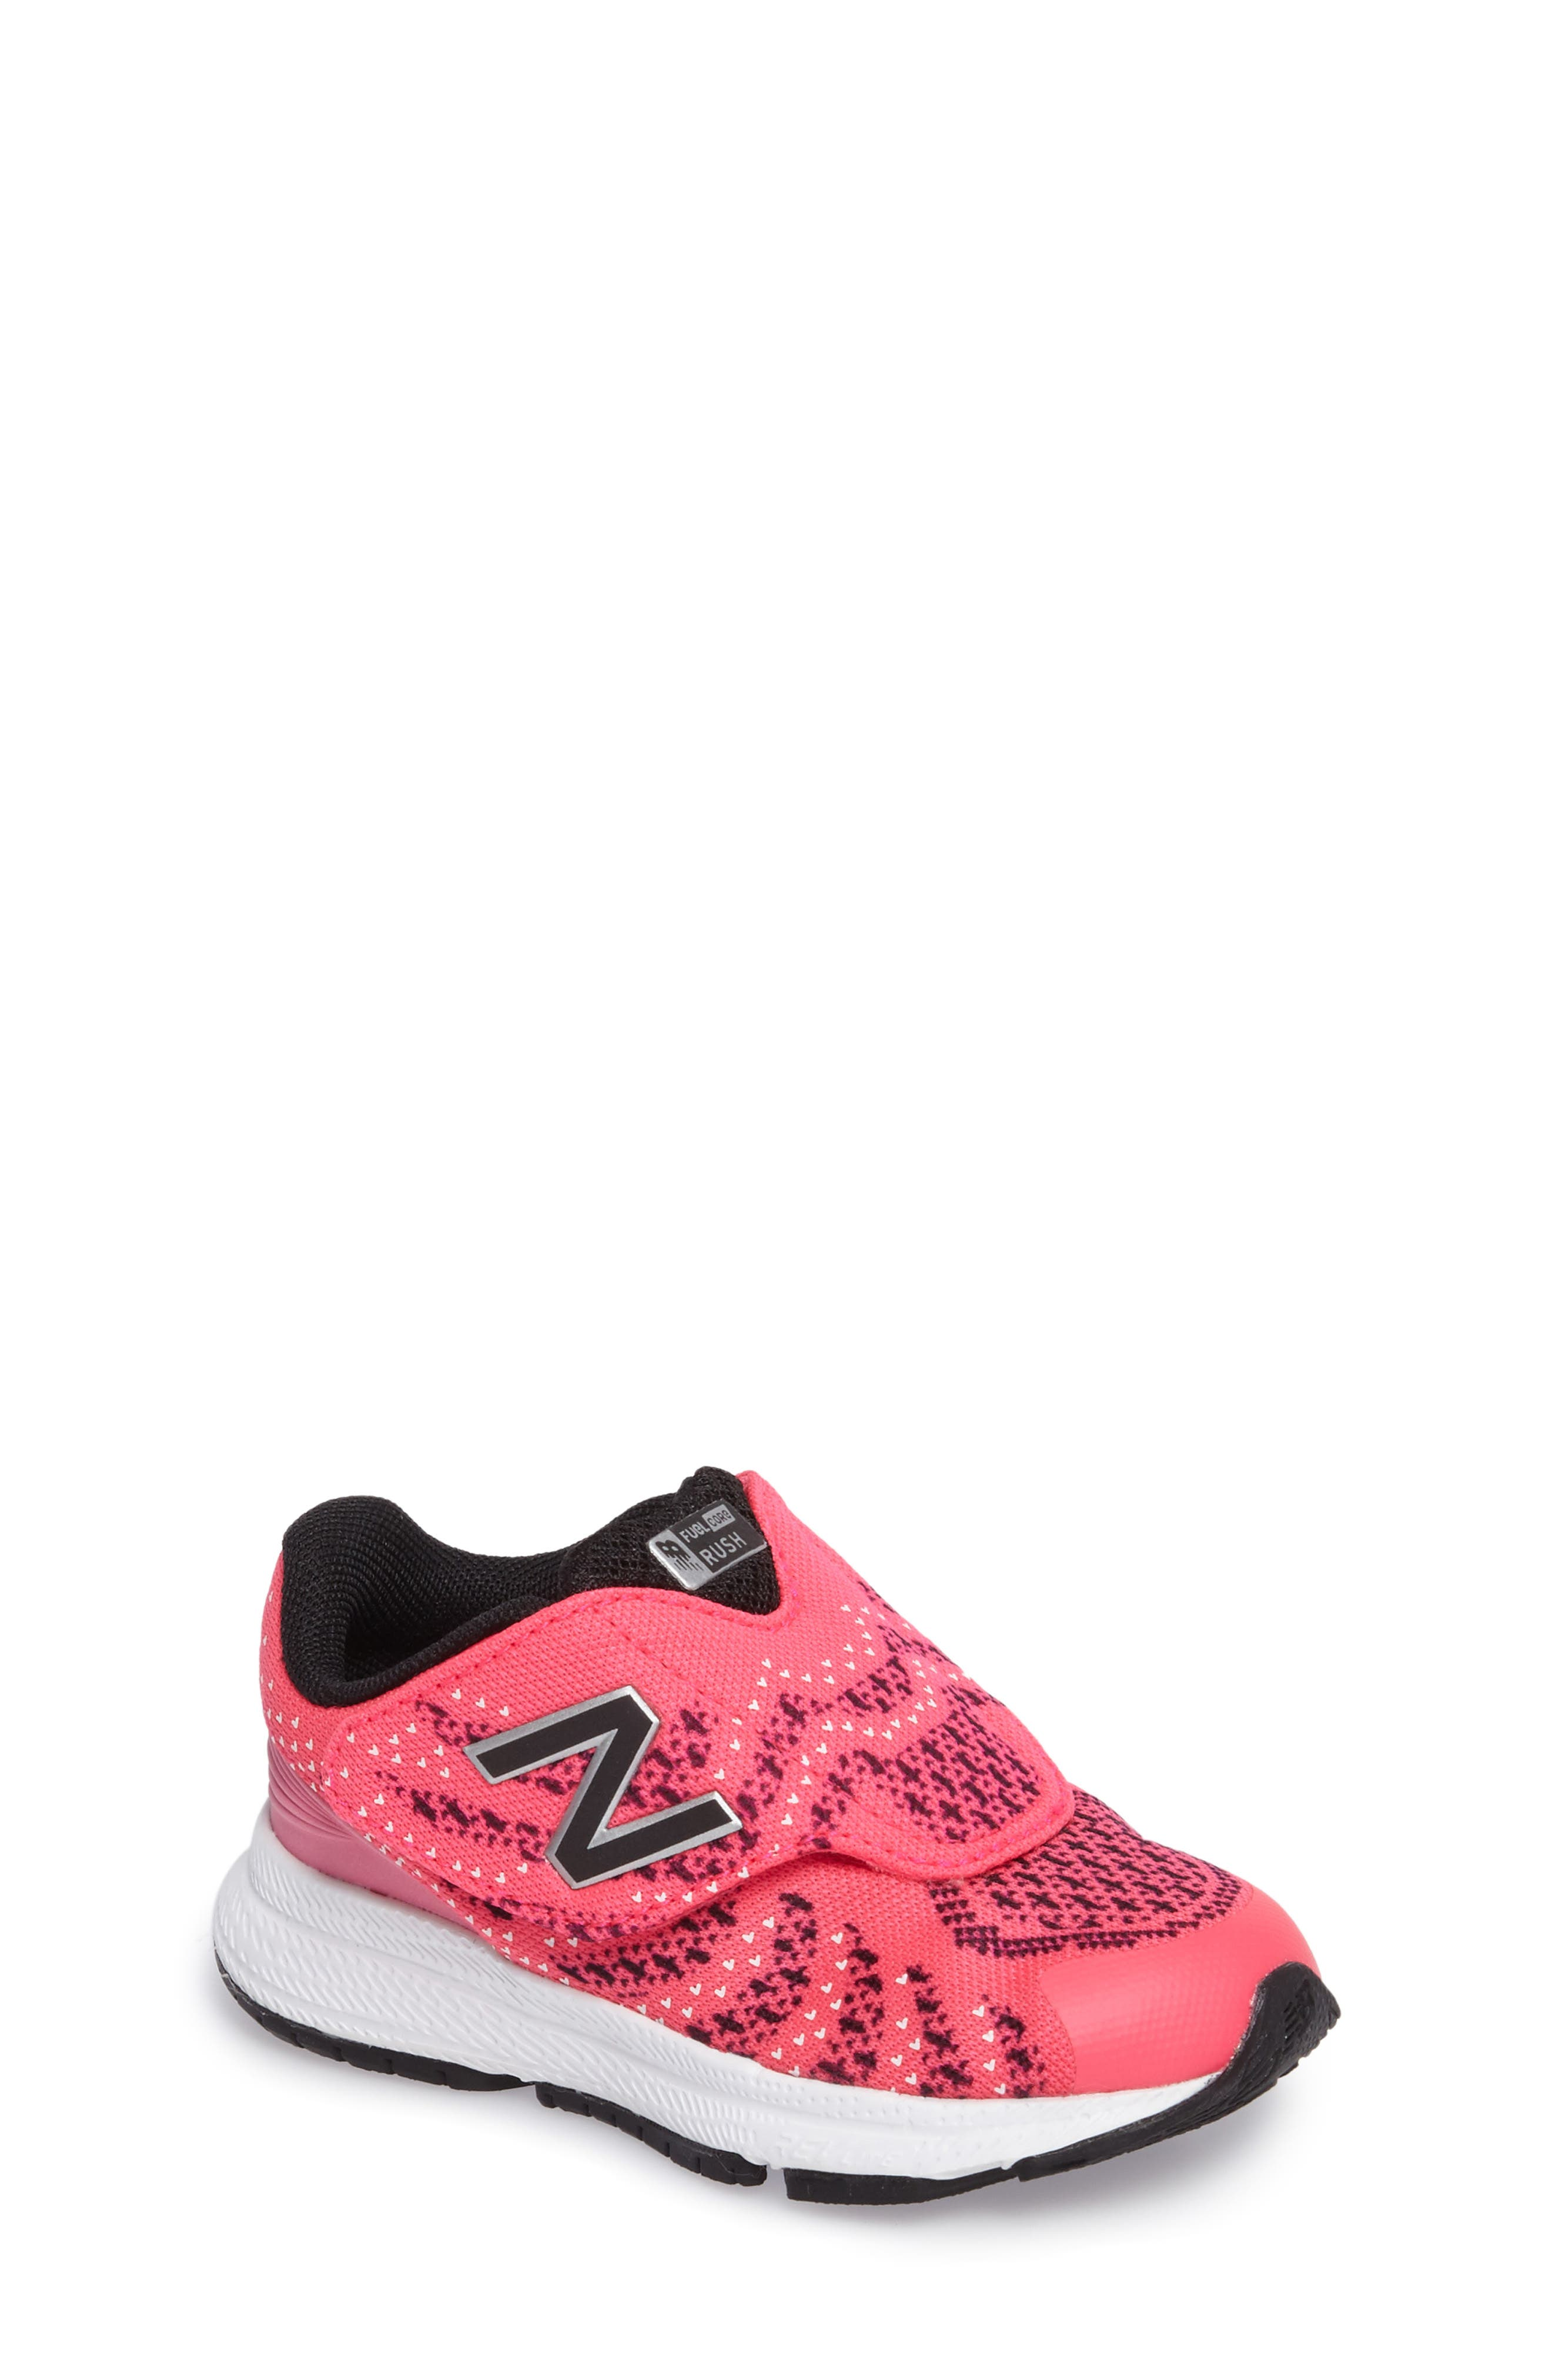 FuelCore Rush v3 Knit Sneaker,                         Main,                         color, Pink